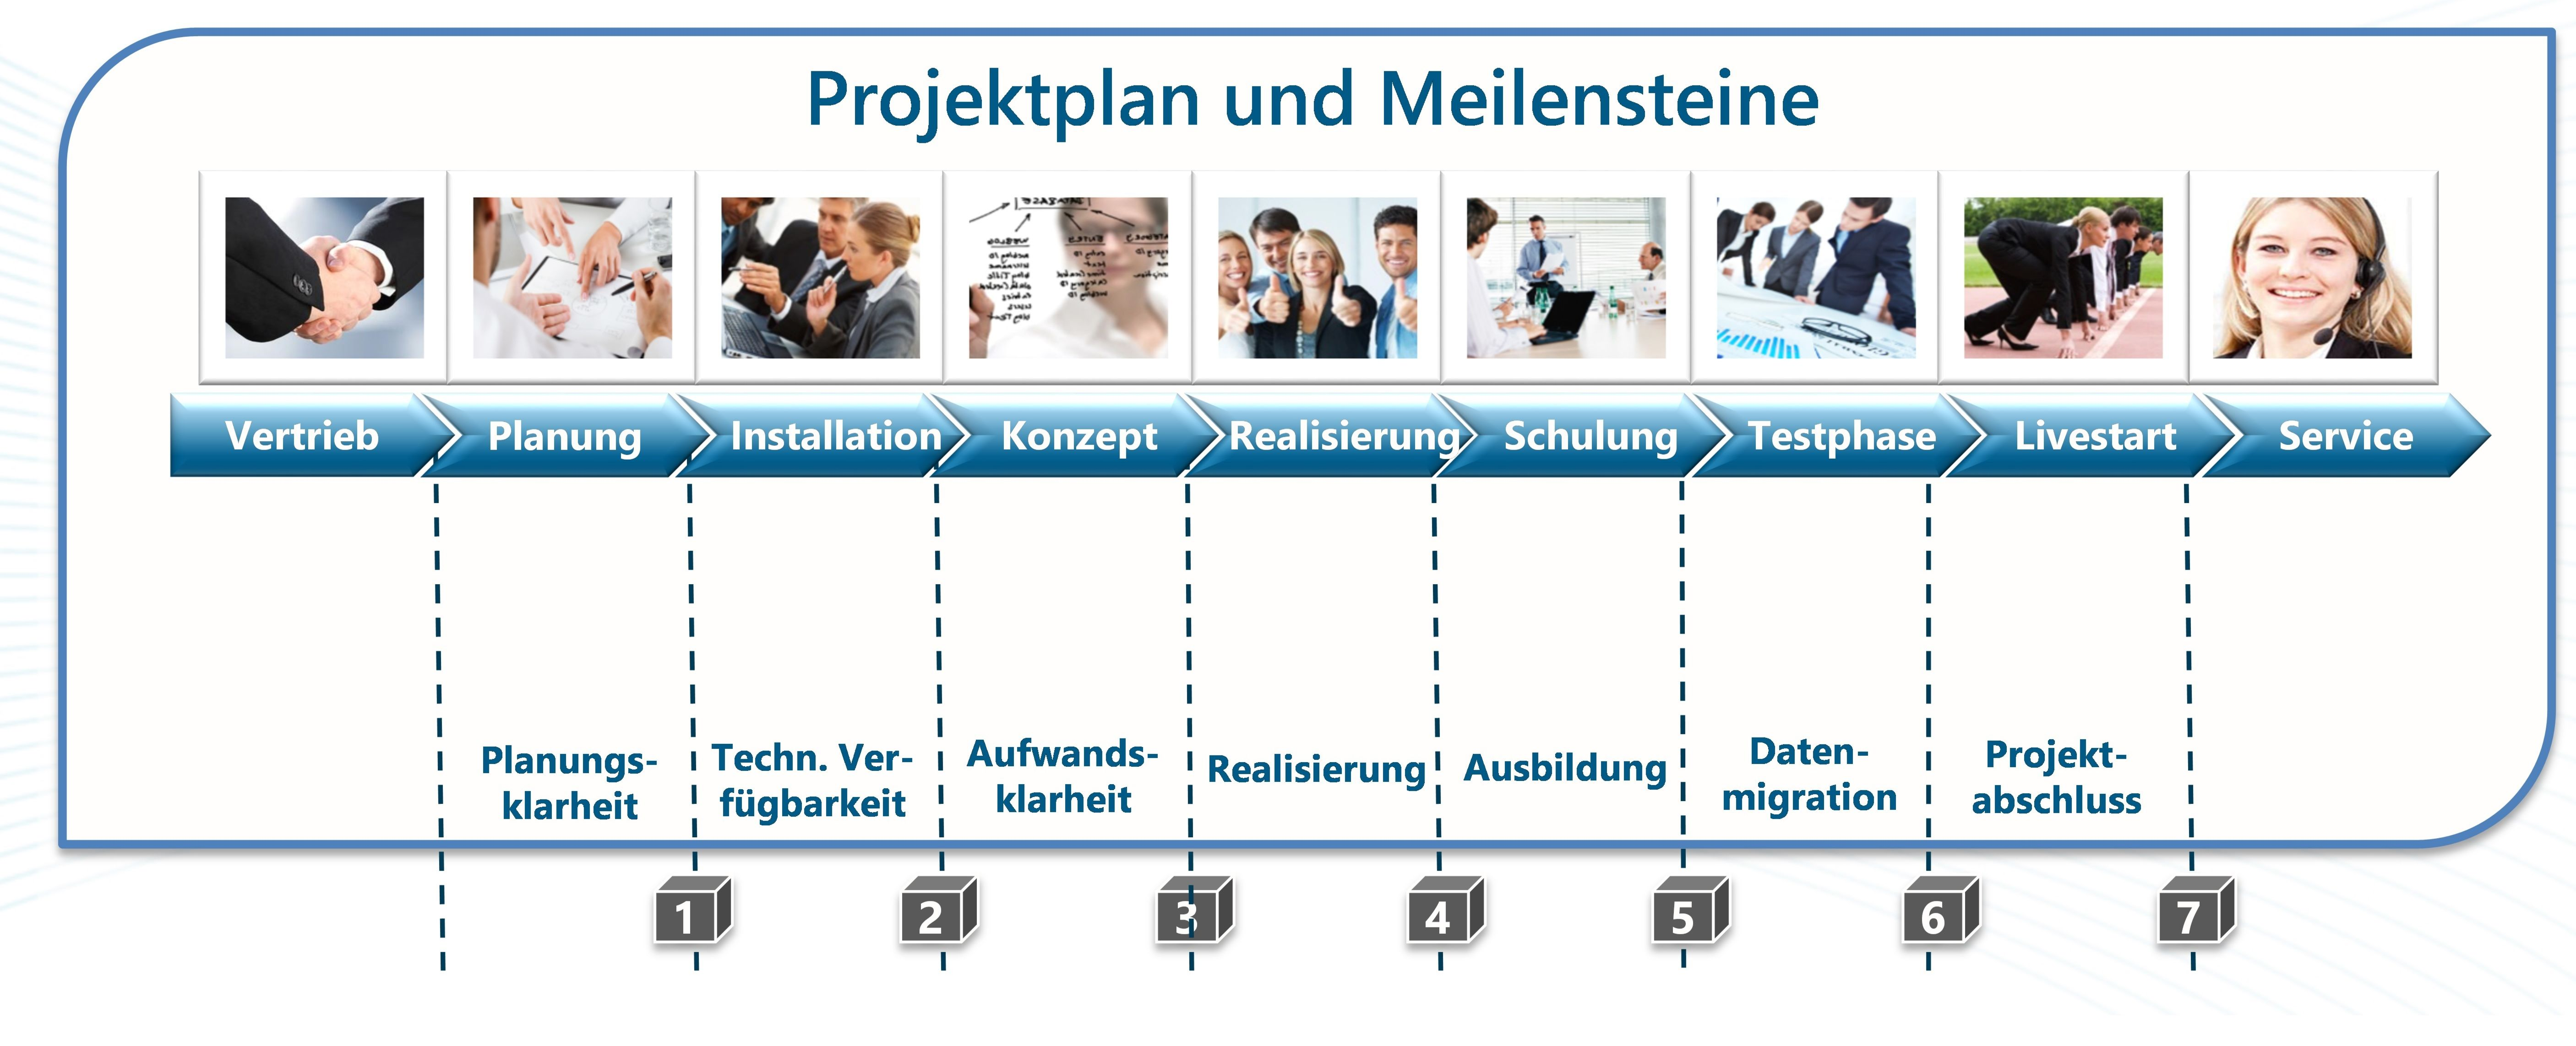 Alternativen zu SAP